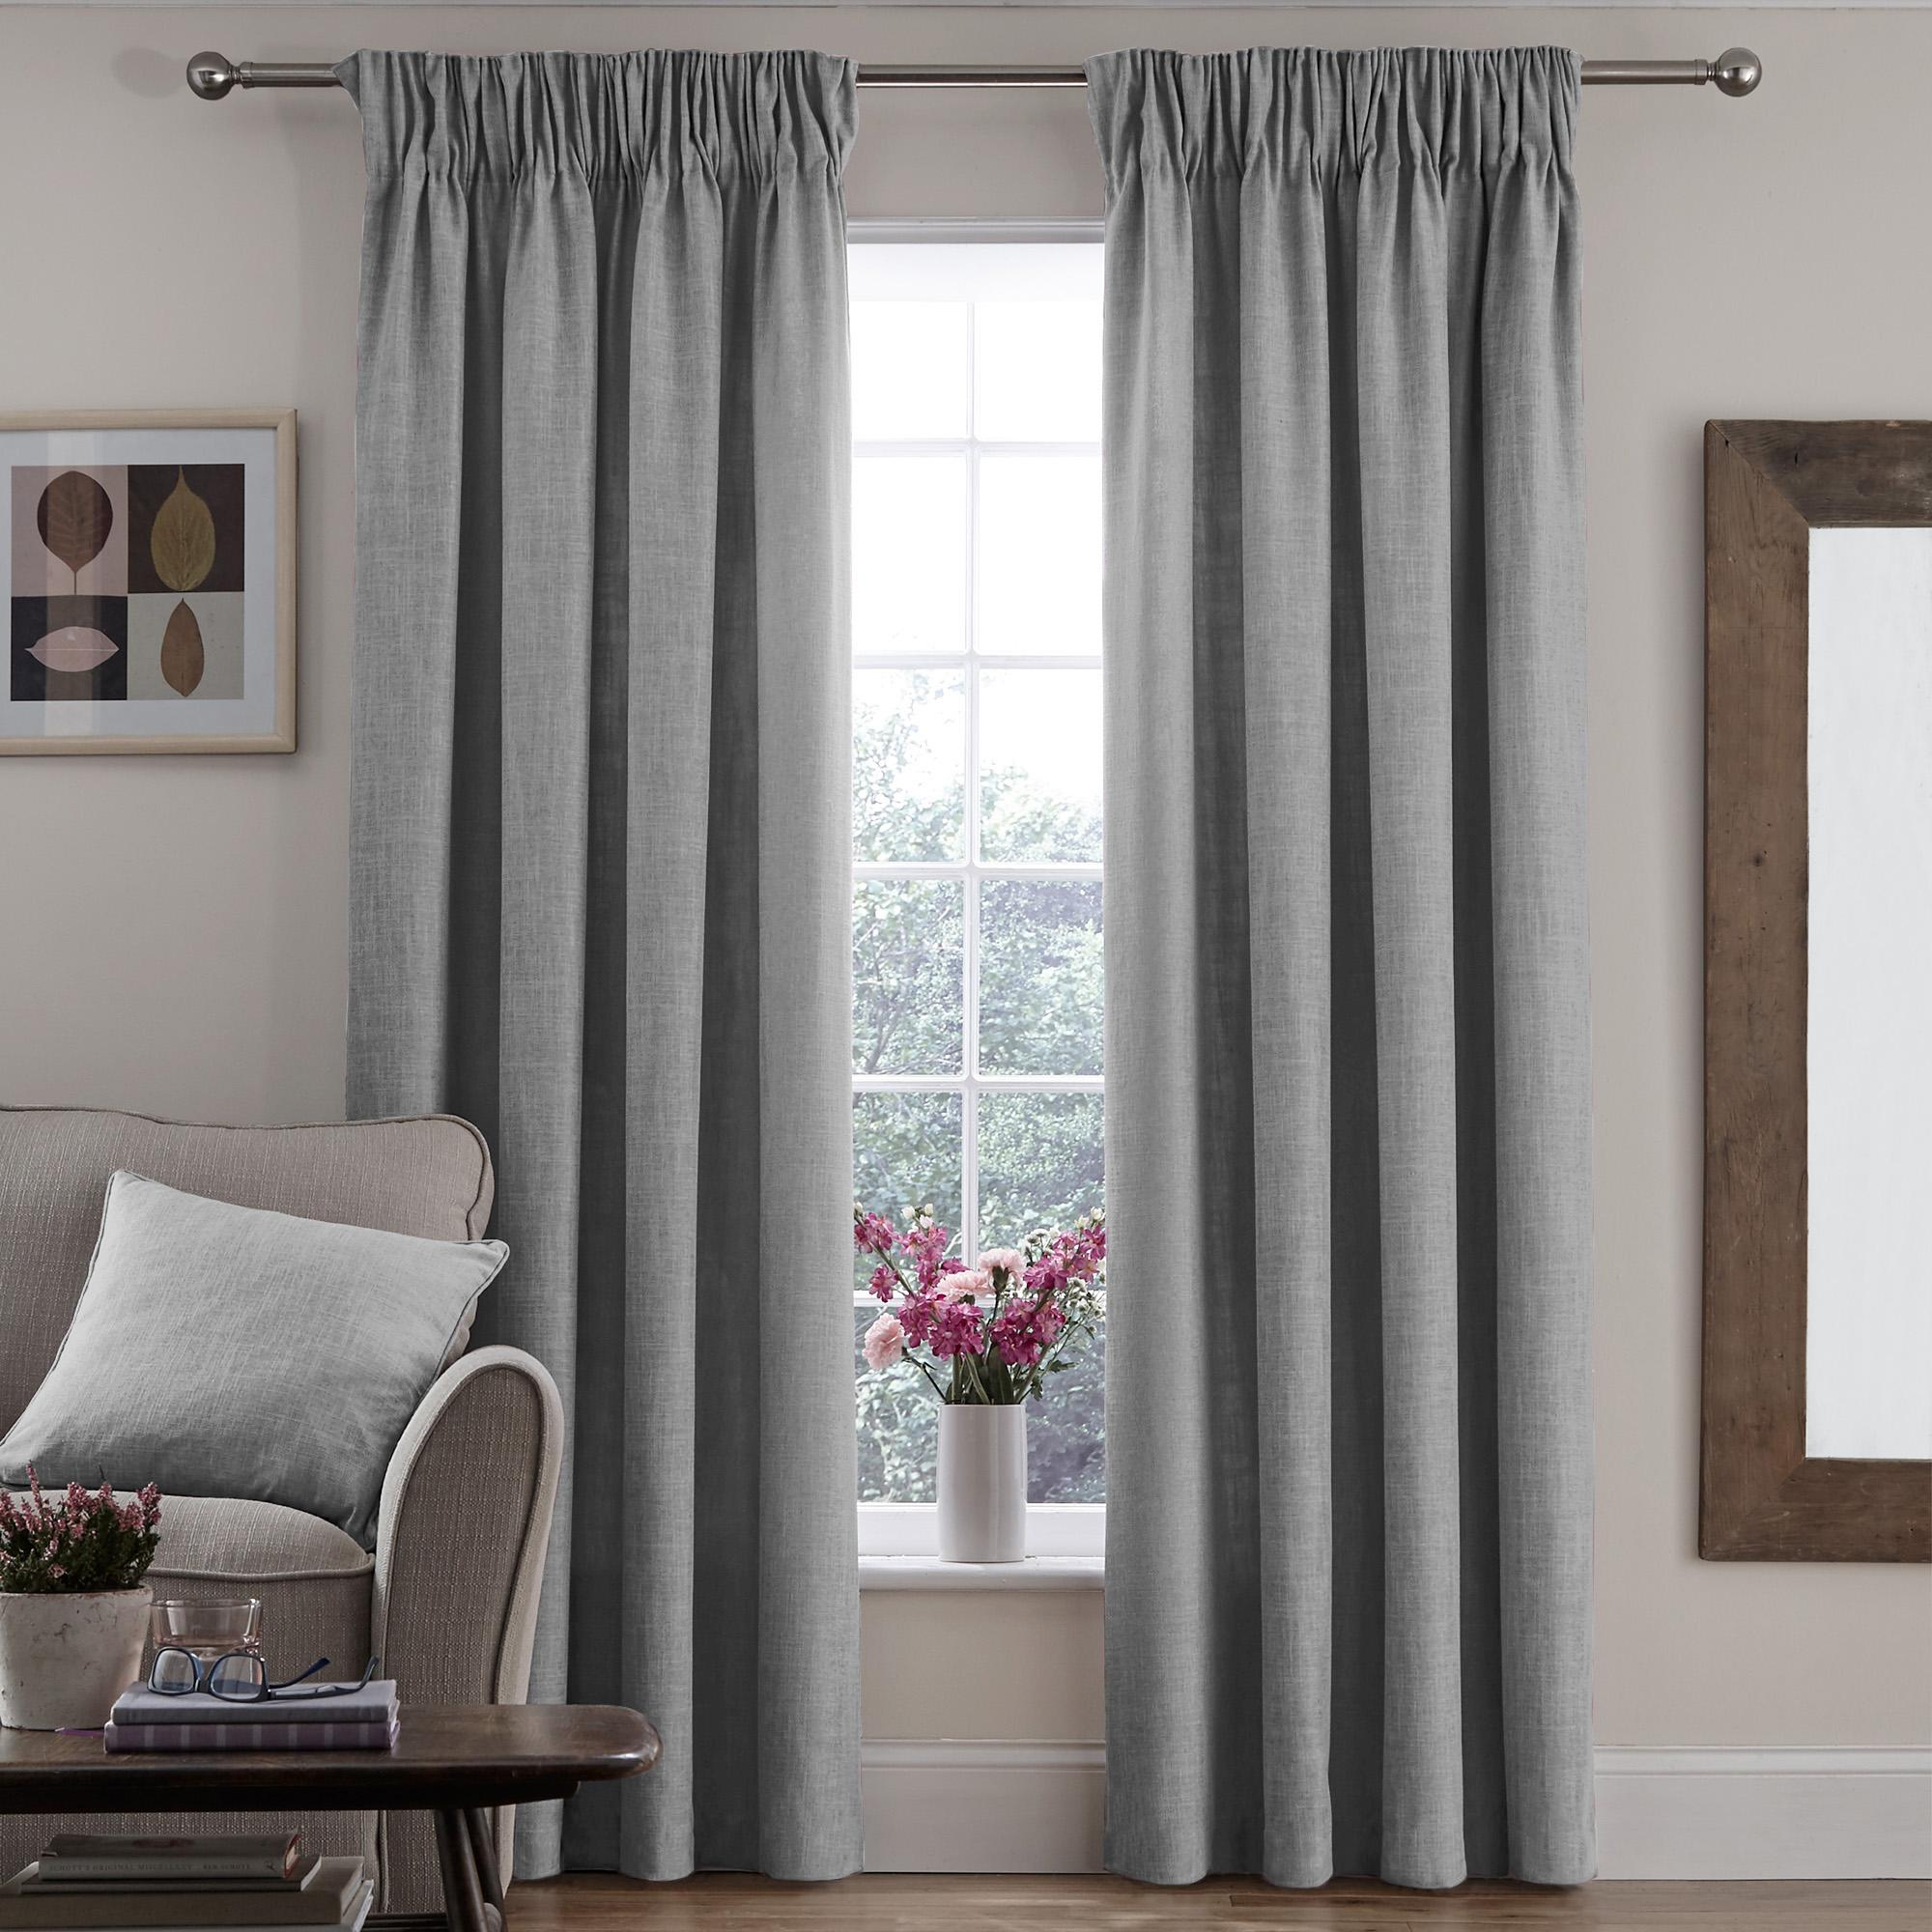 Trendy vermont dove grey lined pencil pleat curtains brwaldn